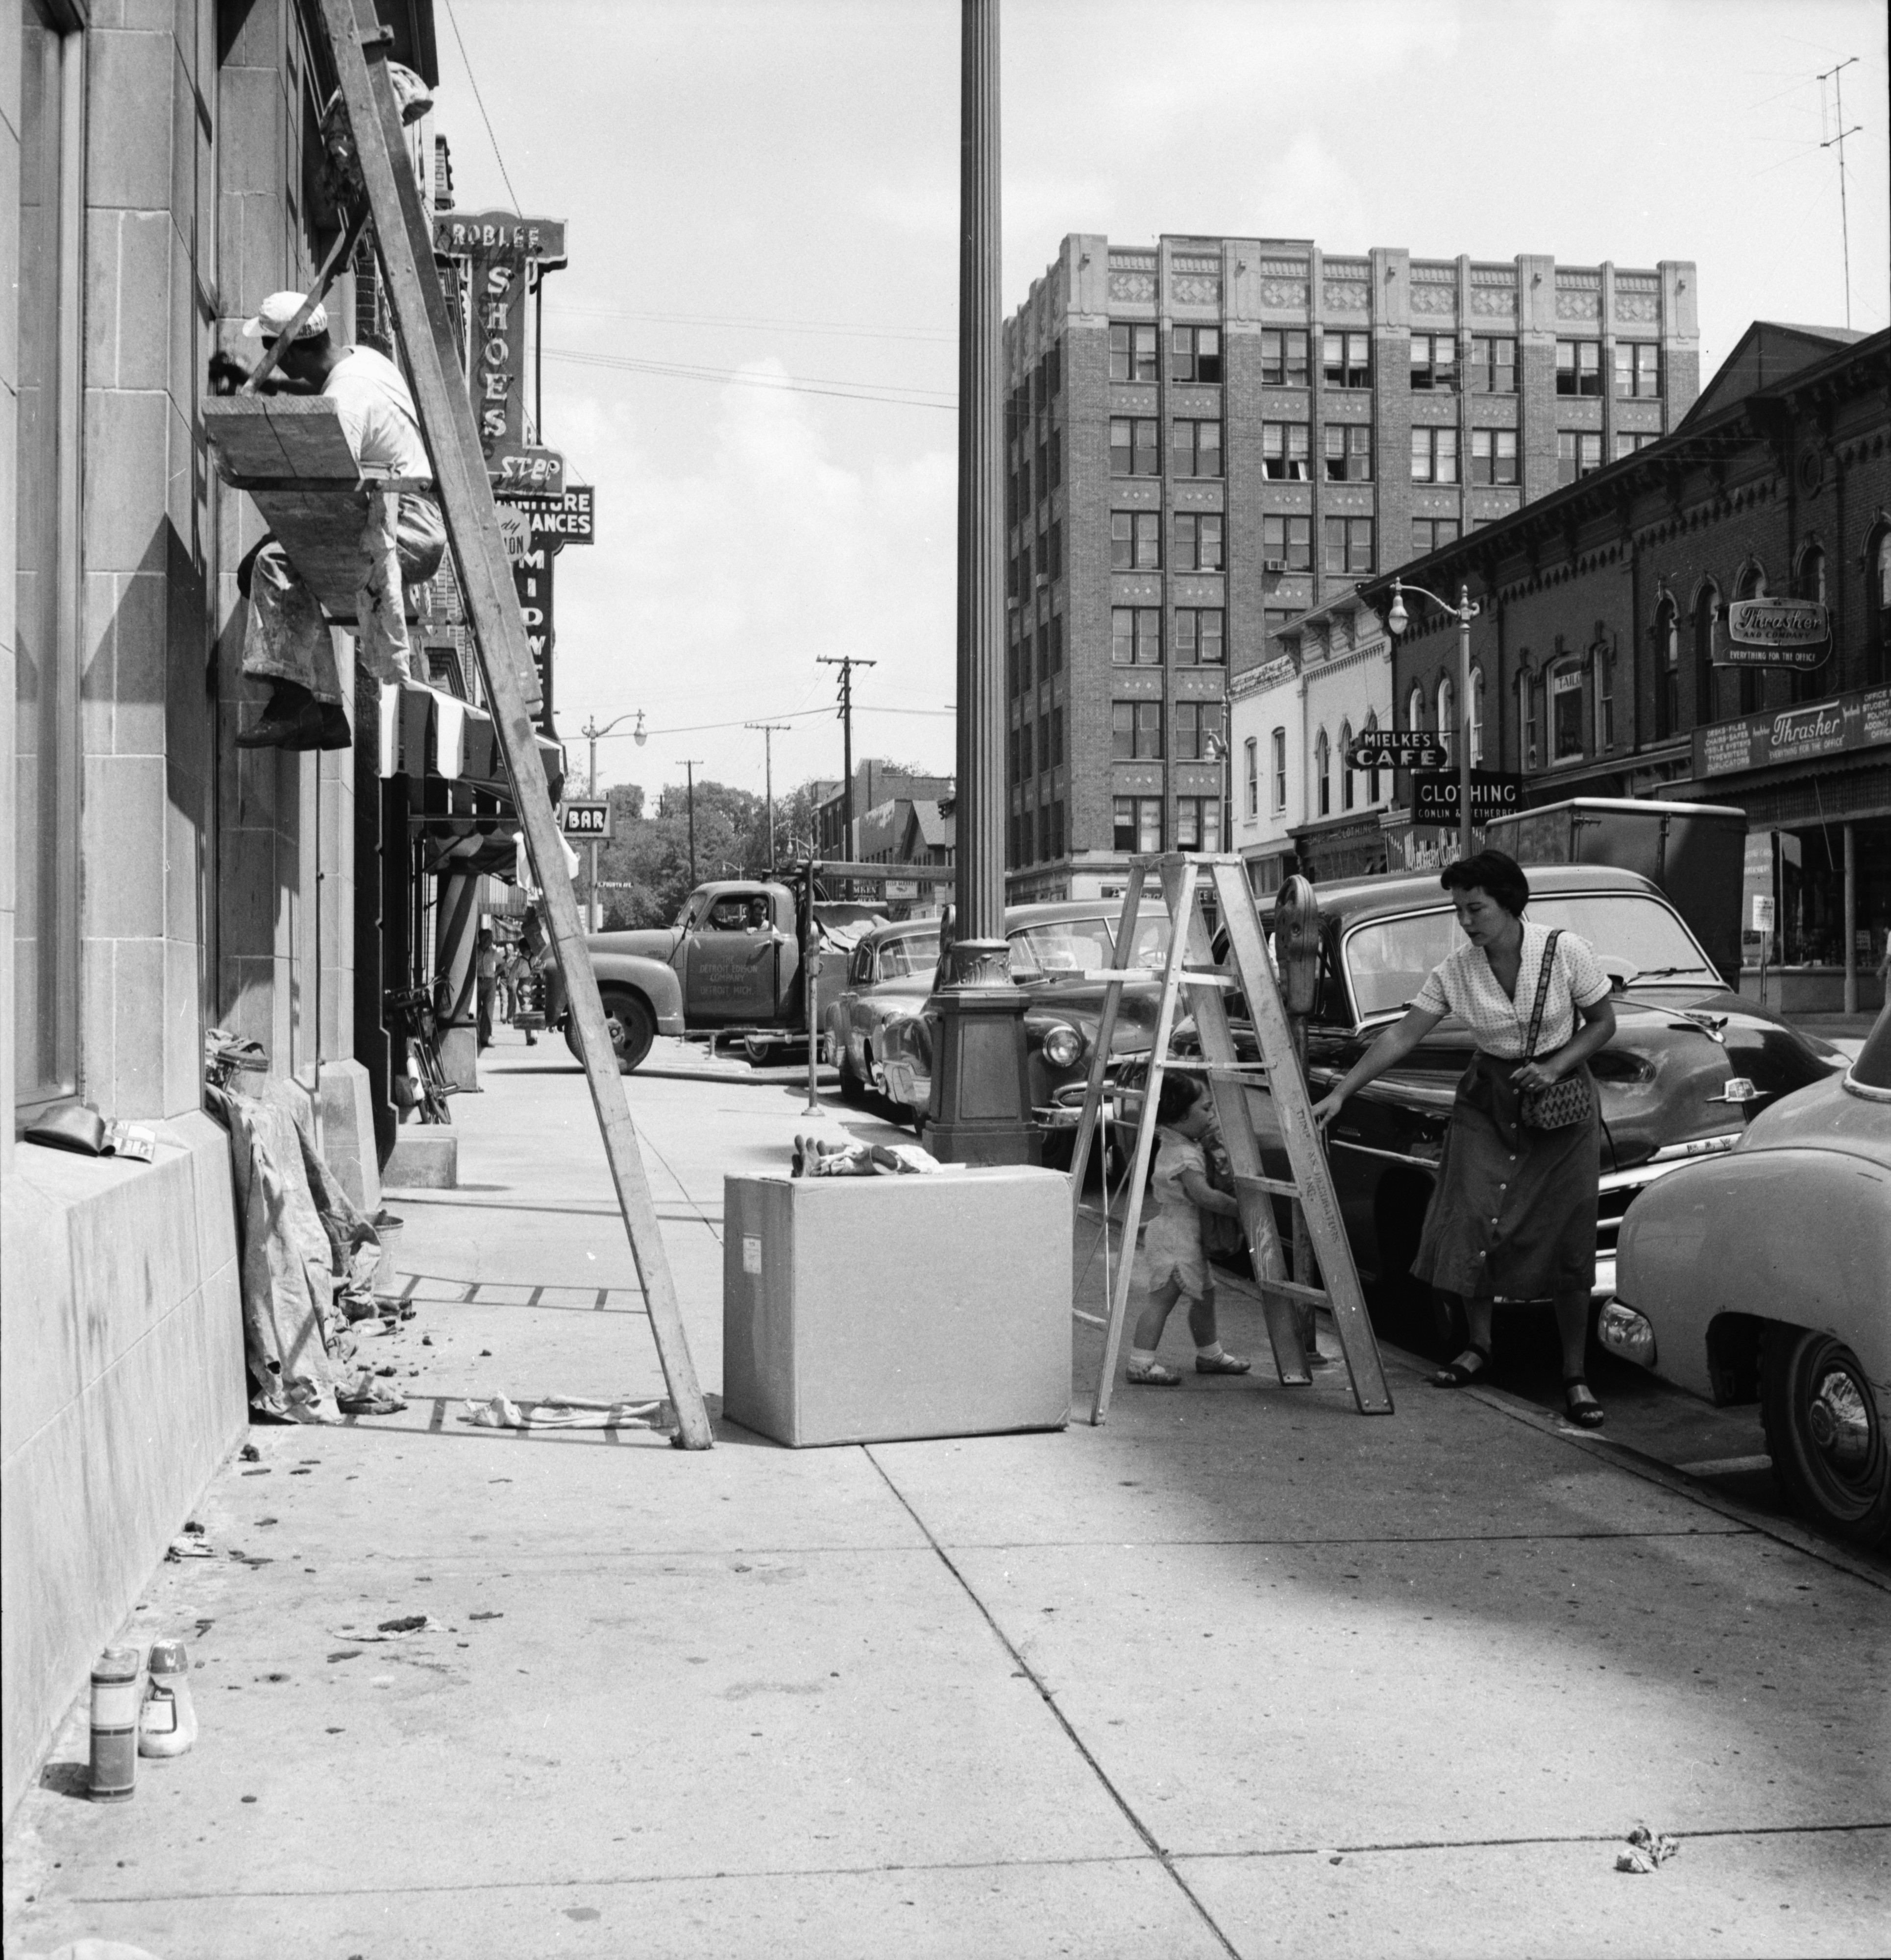 Outside State Savings Bank, 103 Washington St., August 1954 image